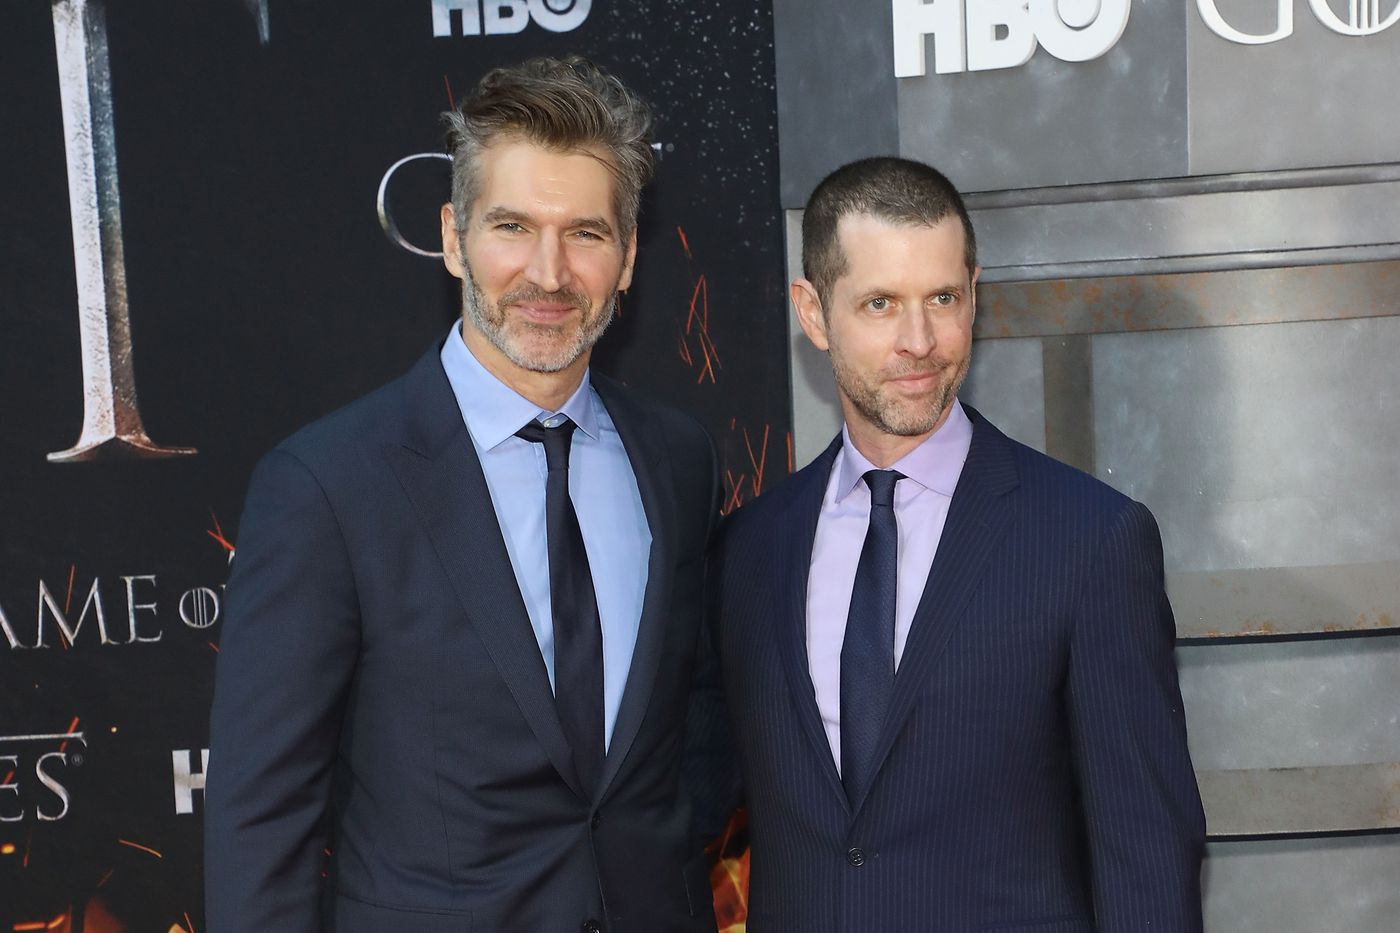 Game Of Thrones Creators Sign 200 Million Netflix Deal To Make Exclusive Shows And Films The Verge